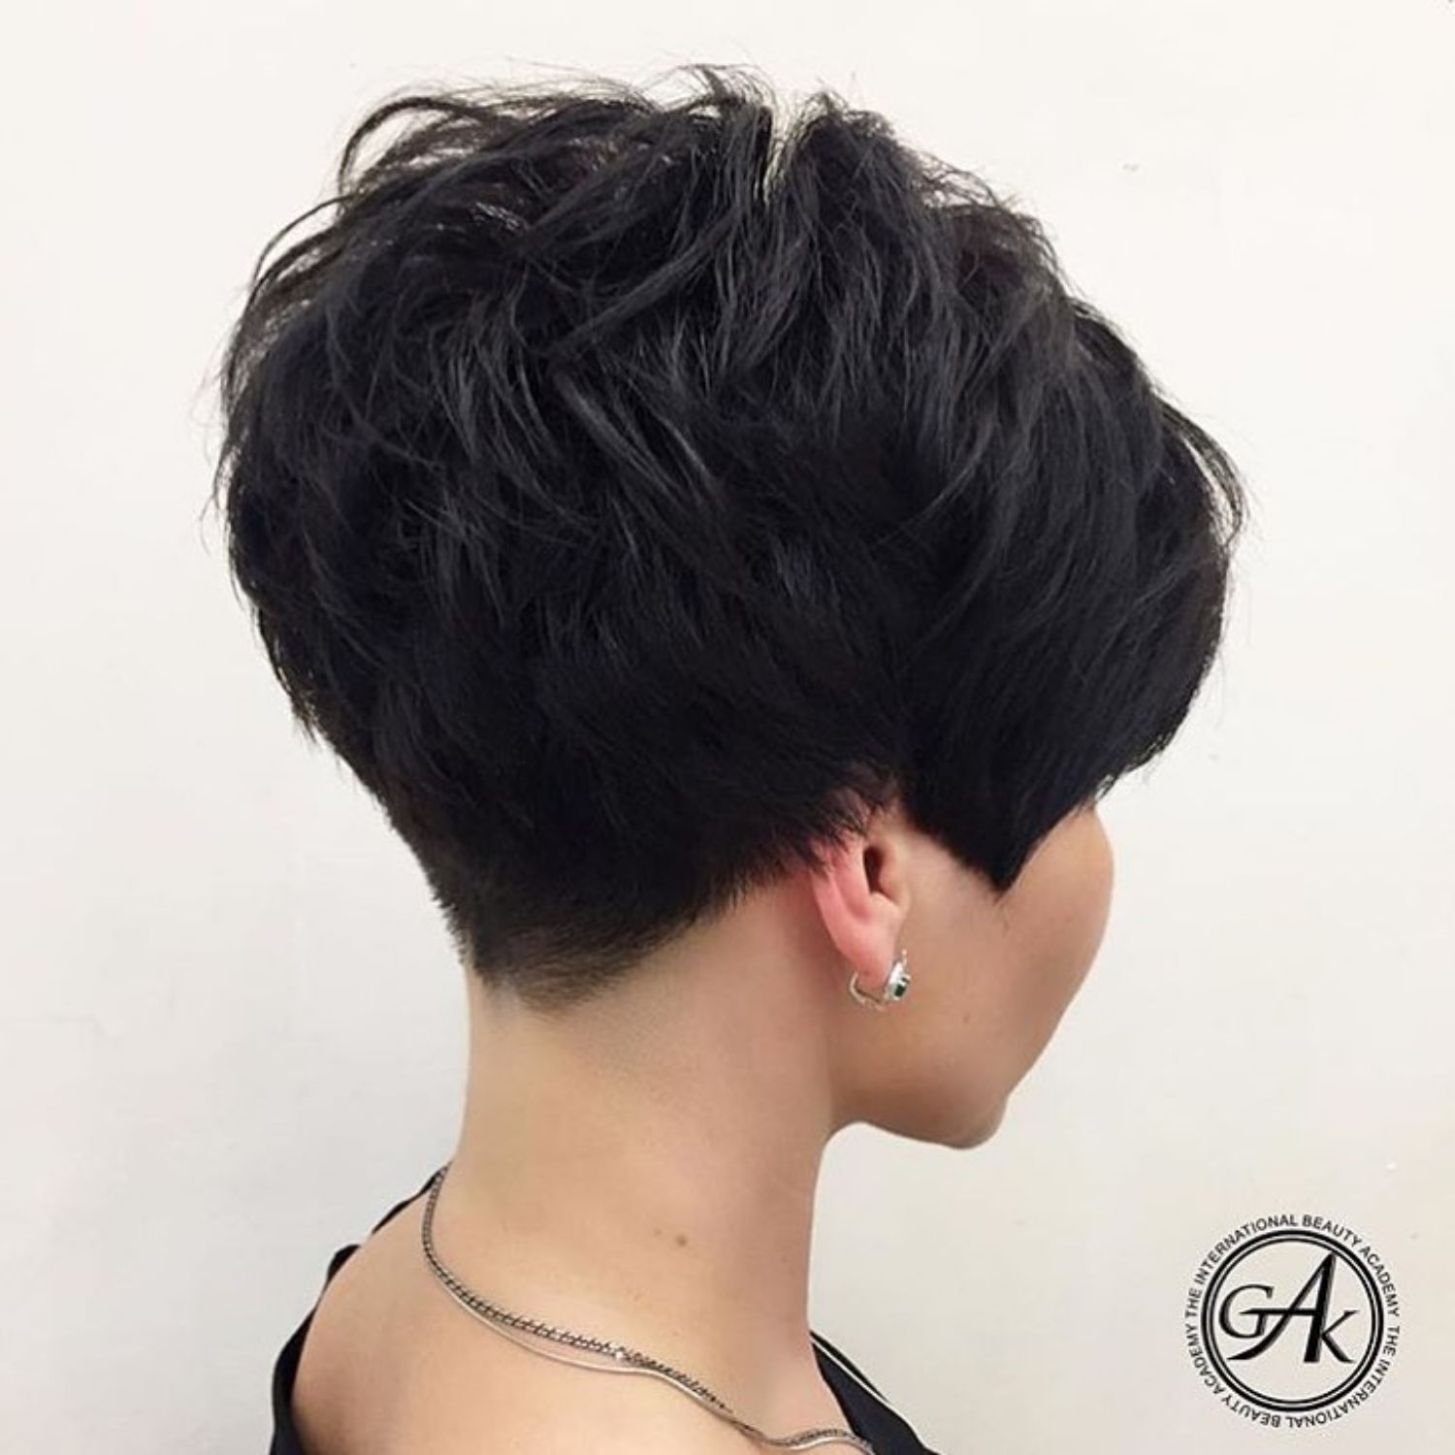 32++ Low maintenance short pixie cuts for thick hair ideas in 2021